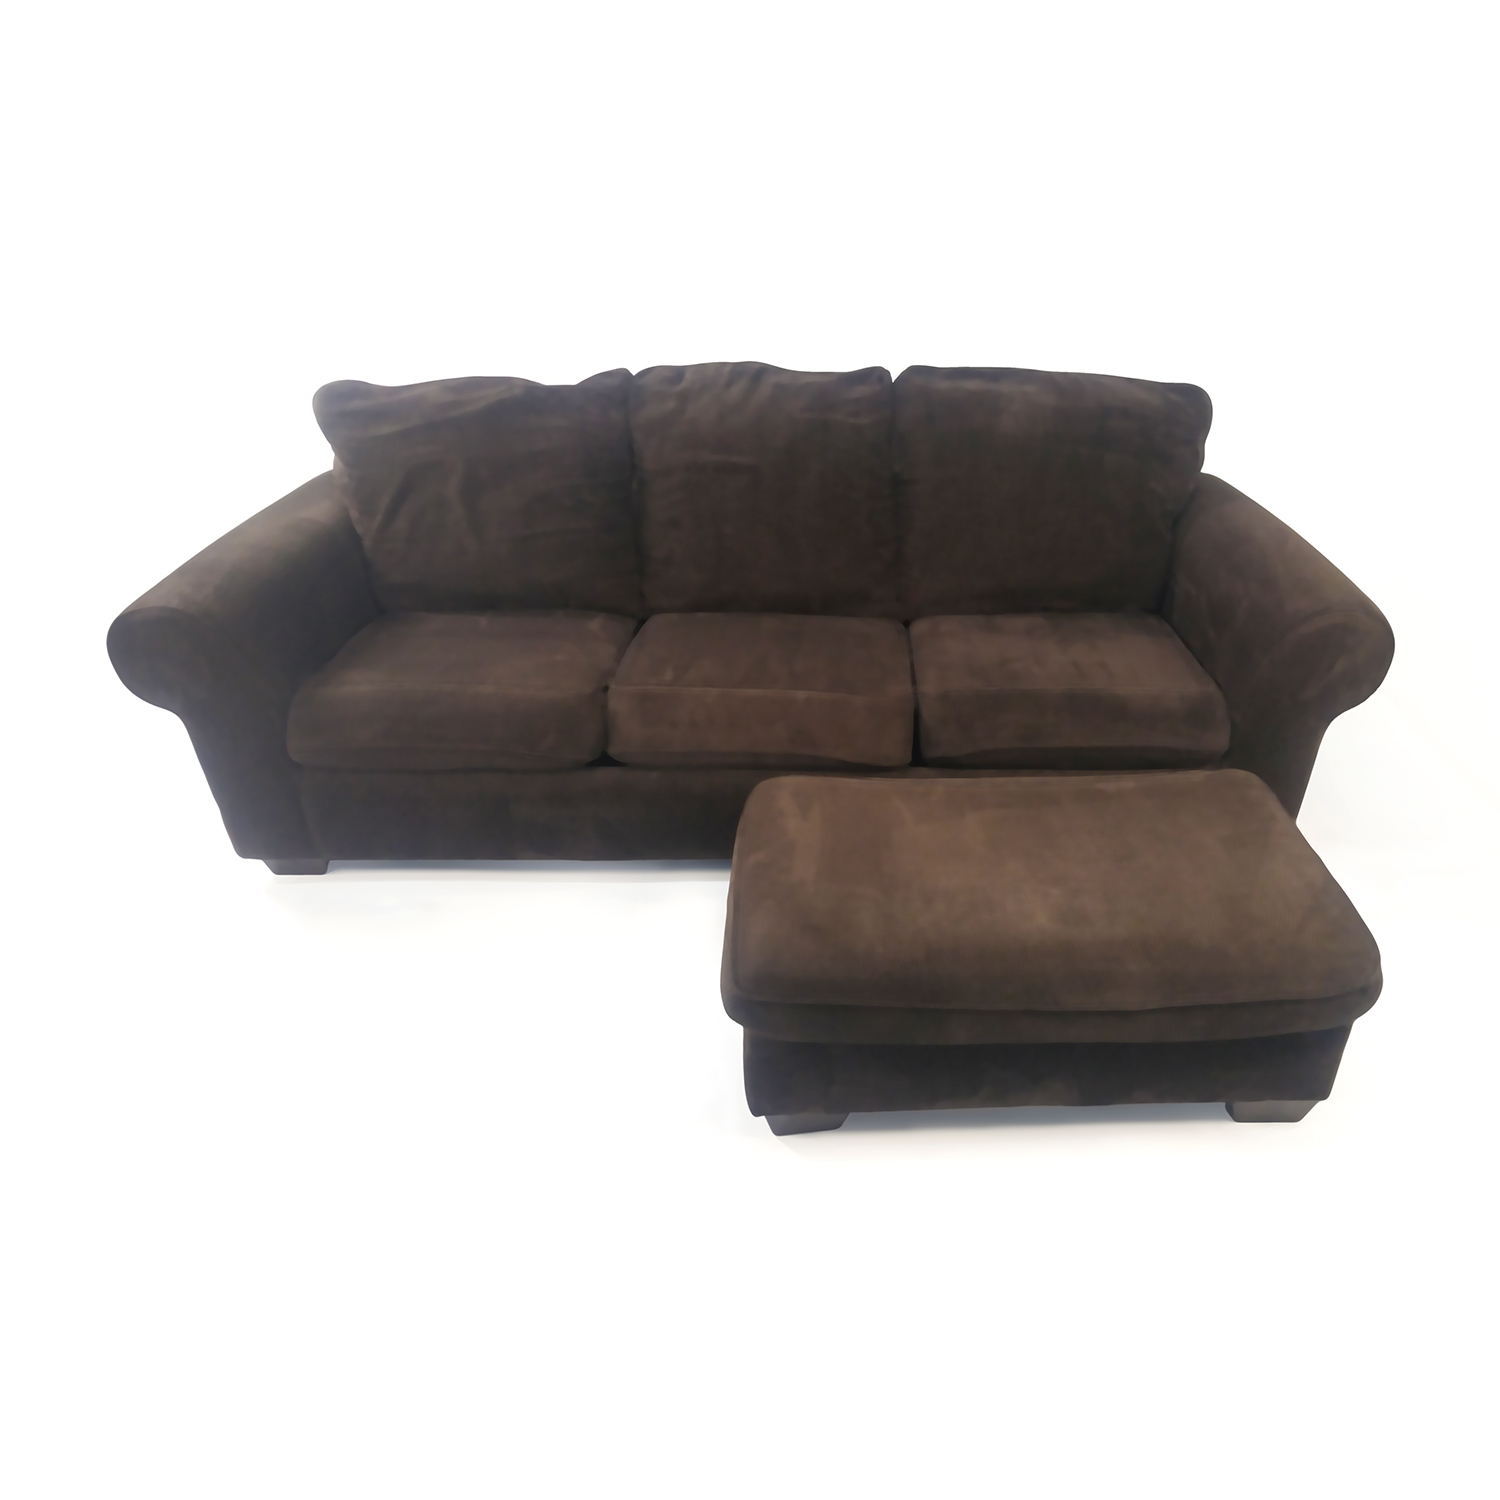 Custom Plush Couch with Ottoman nyc